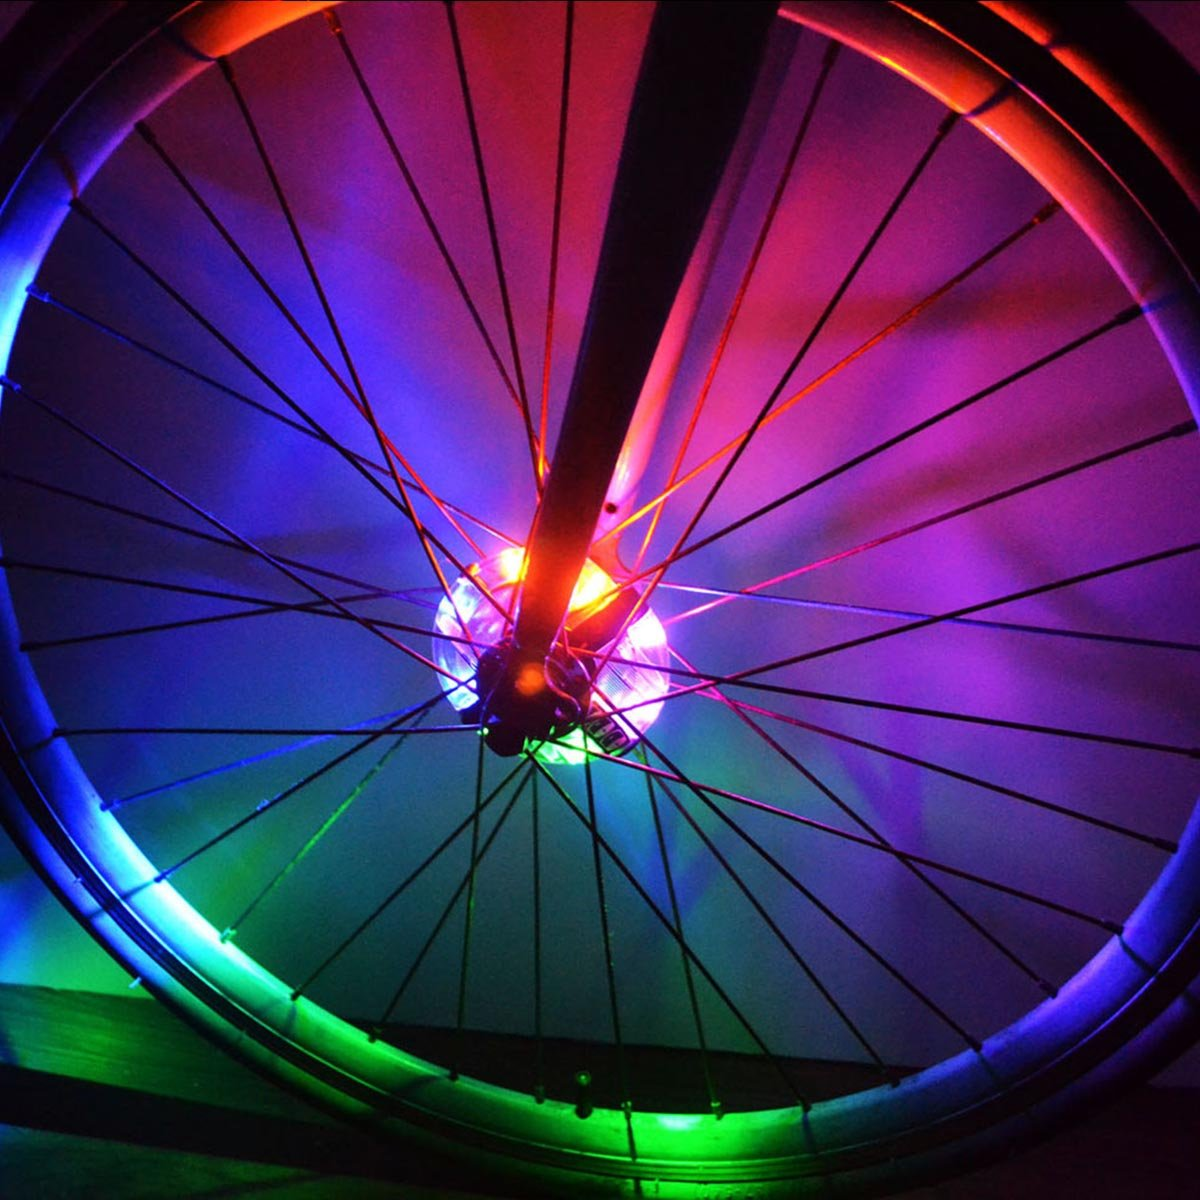 Colorful LED Bicycle Wheel Decoration Lights 3 Modes Cycling Bike Spoke Light Safety Light by LoveUlife (Image #3)